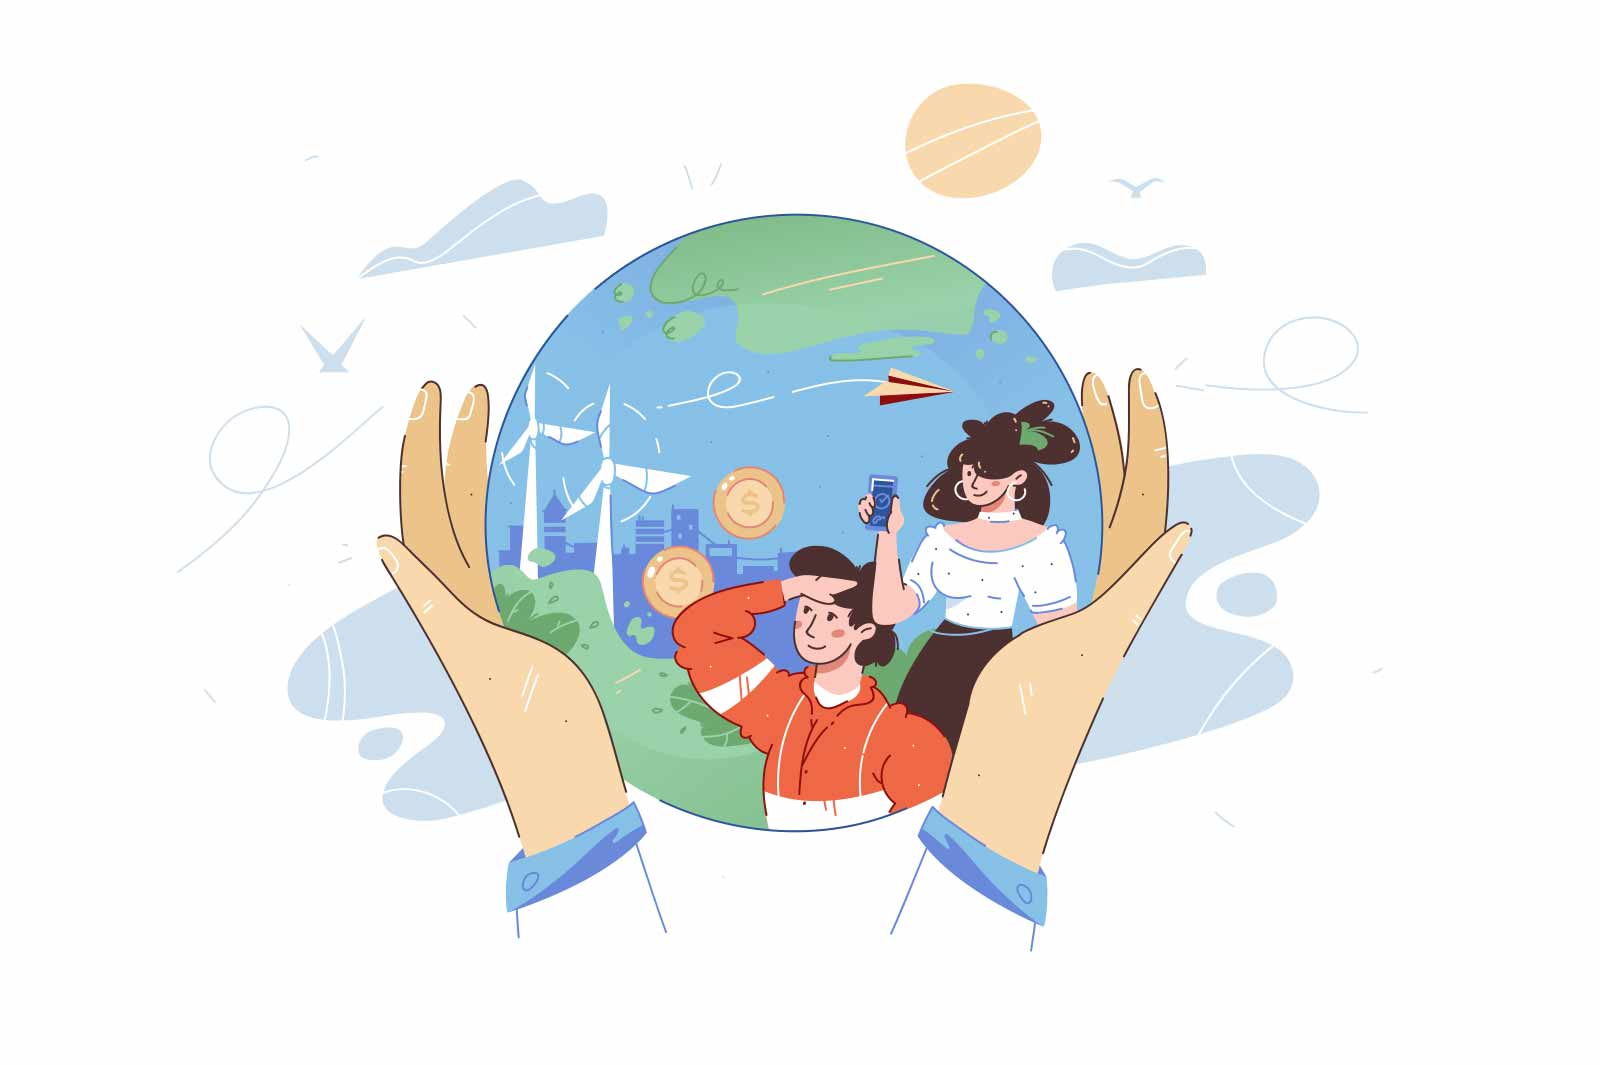 Person hands hold whole planet vector illustration. Best place for living flat style. Future technologies, save planet, earth day concept